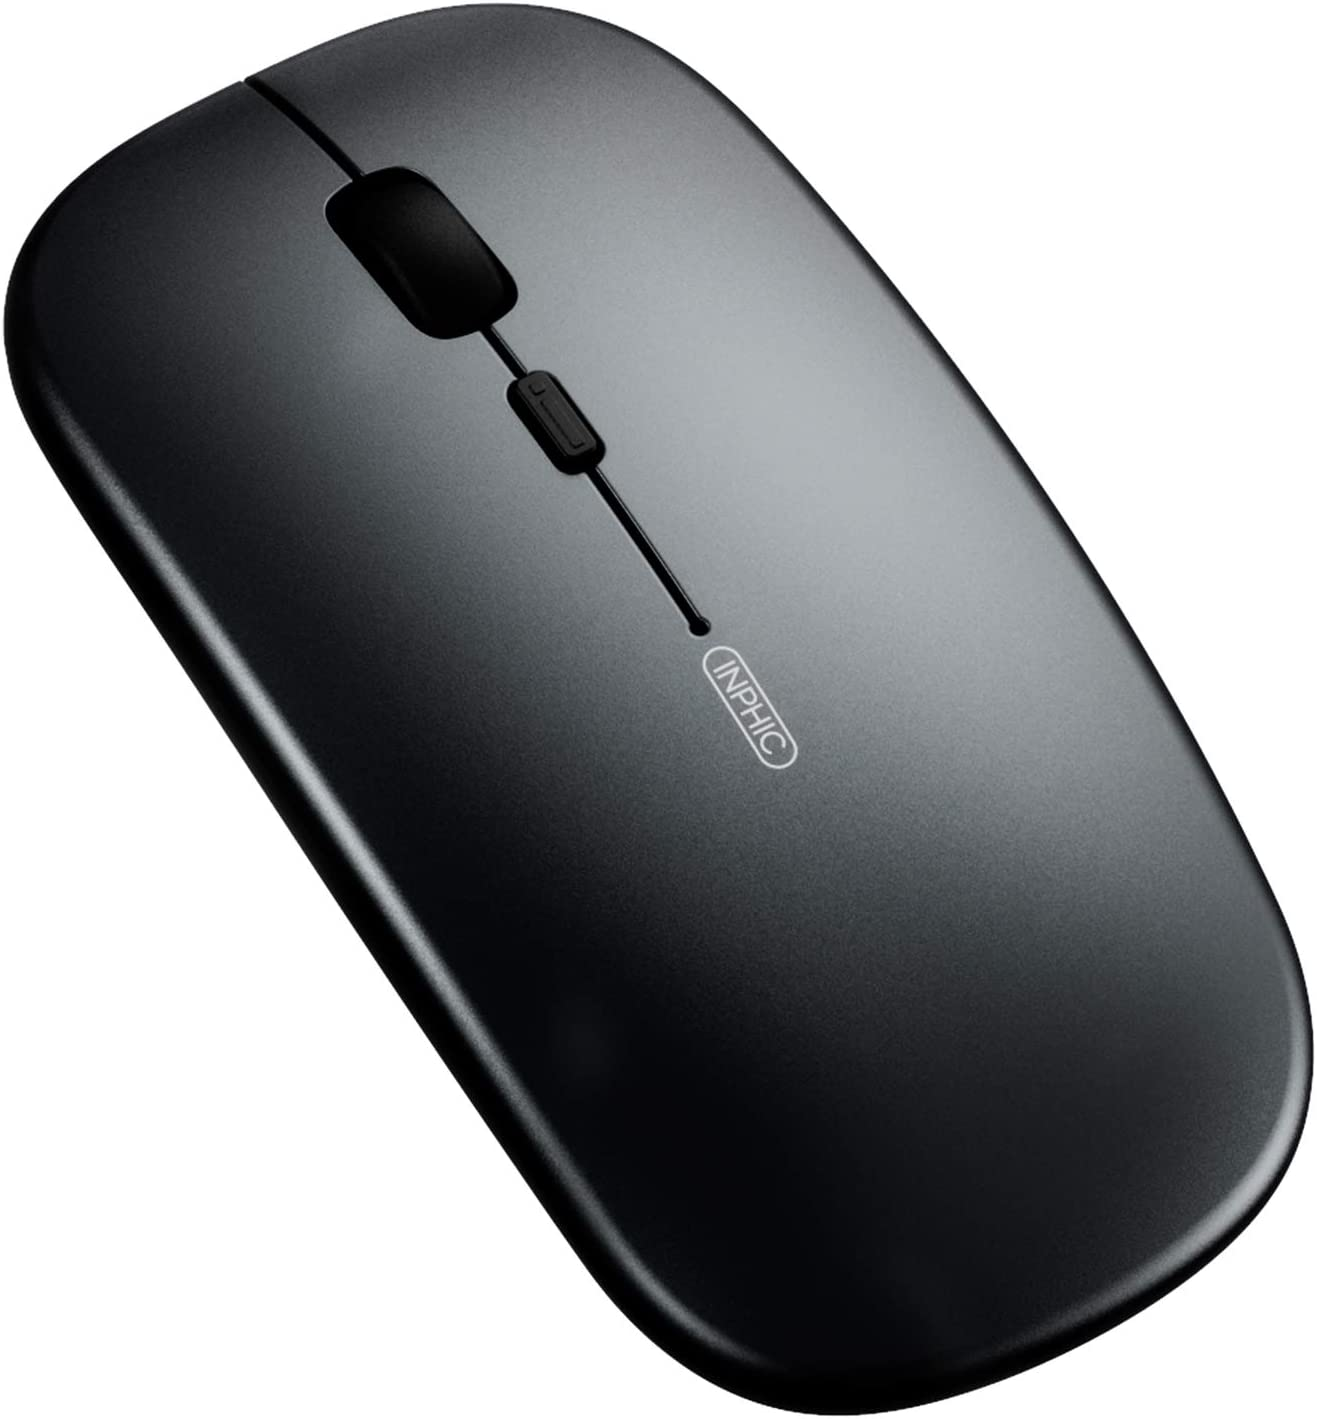 Bluetooth Mouse, Inphic Rechargeable Wireless Mouse Tri-Mode (Bluetooth 5.0/4.0+2.4ghz) with Ultra-Slim and Silent Click, 1600dpi 3 Adjustable Optical Portable Mouse for Pc MacBook Ipad Os Black